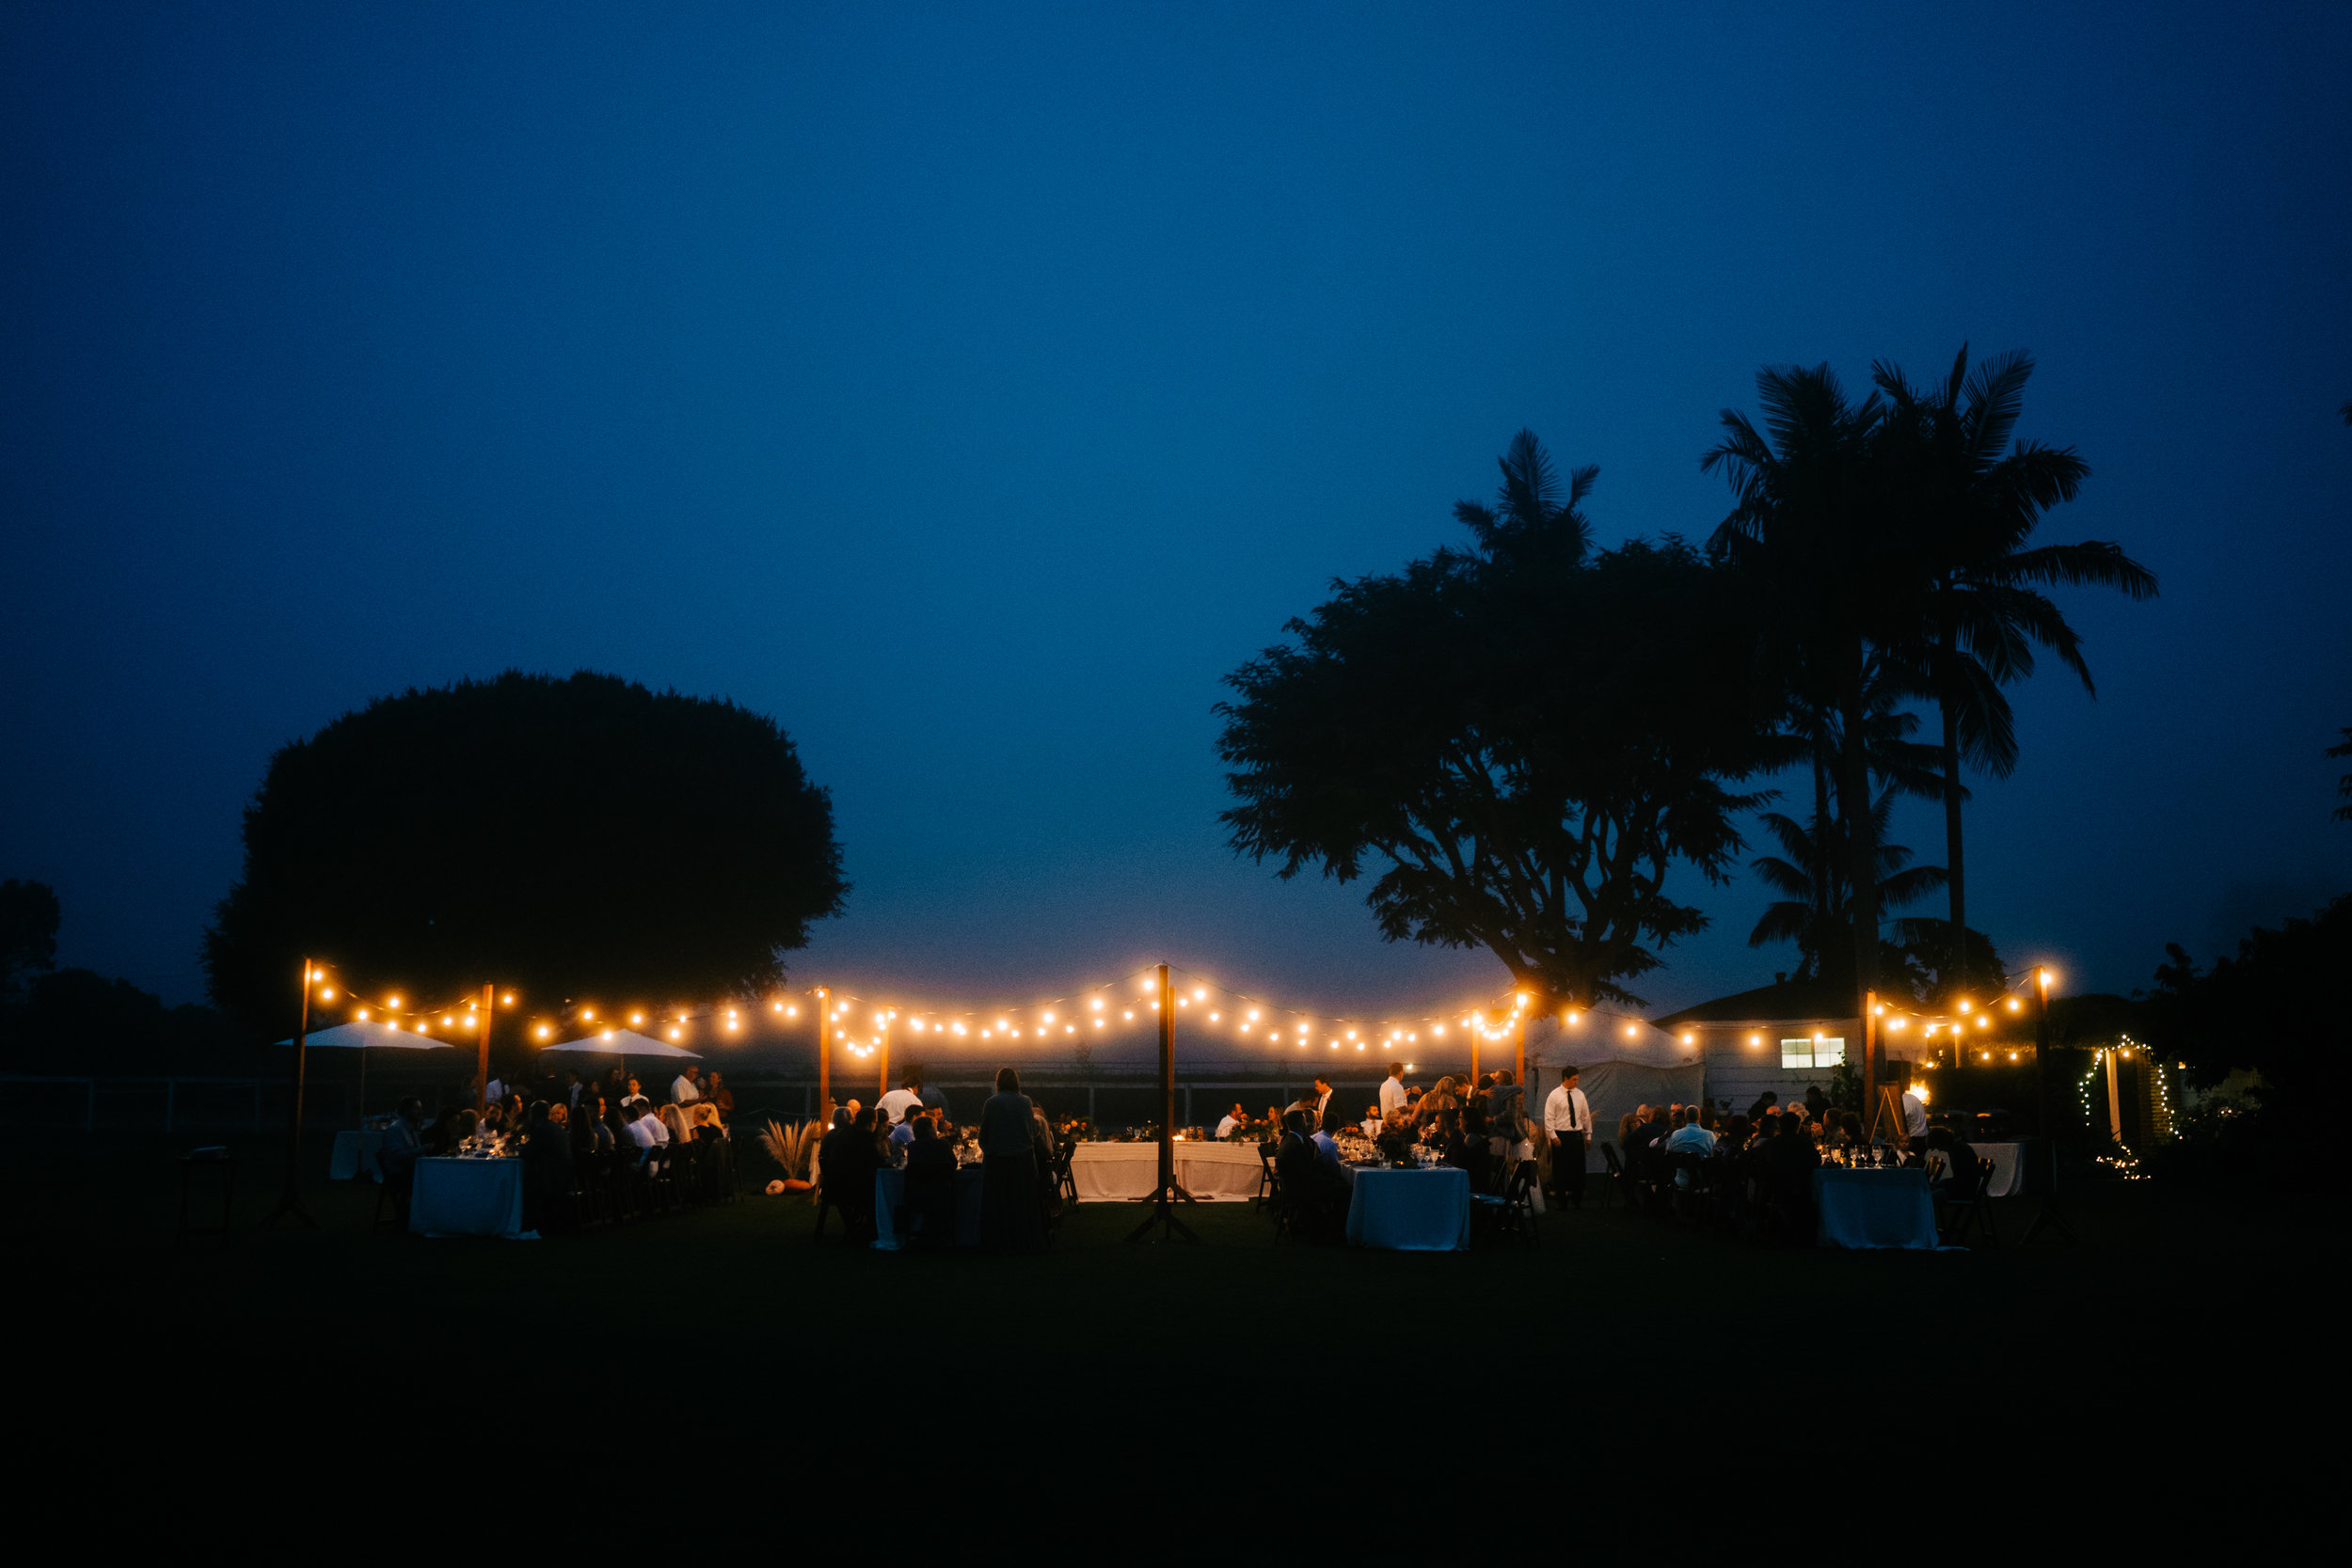 allie-shupe-tyler-wiggins-wedding-santa-barbara 215.jpg